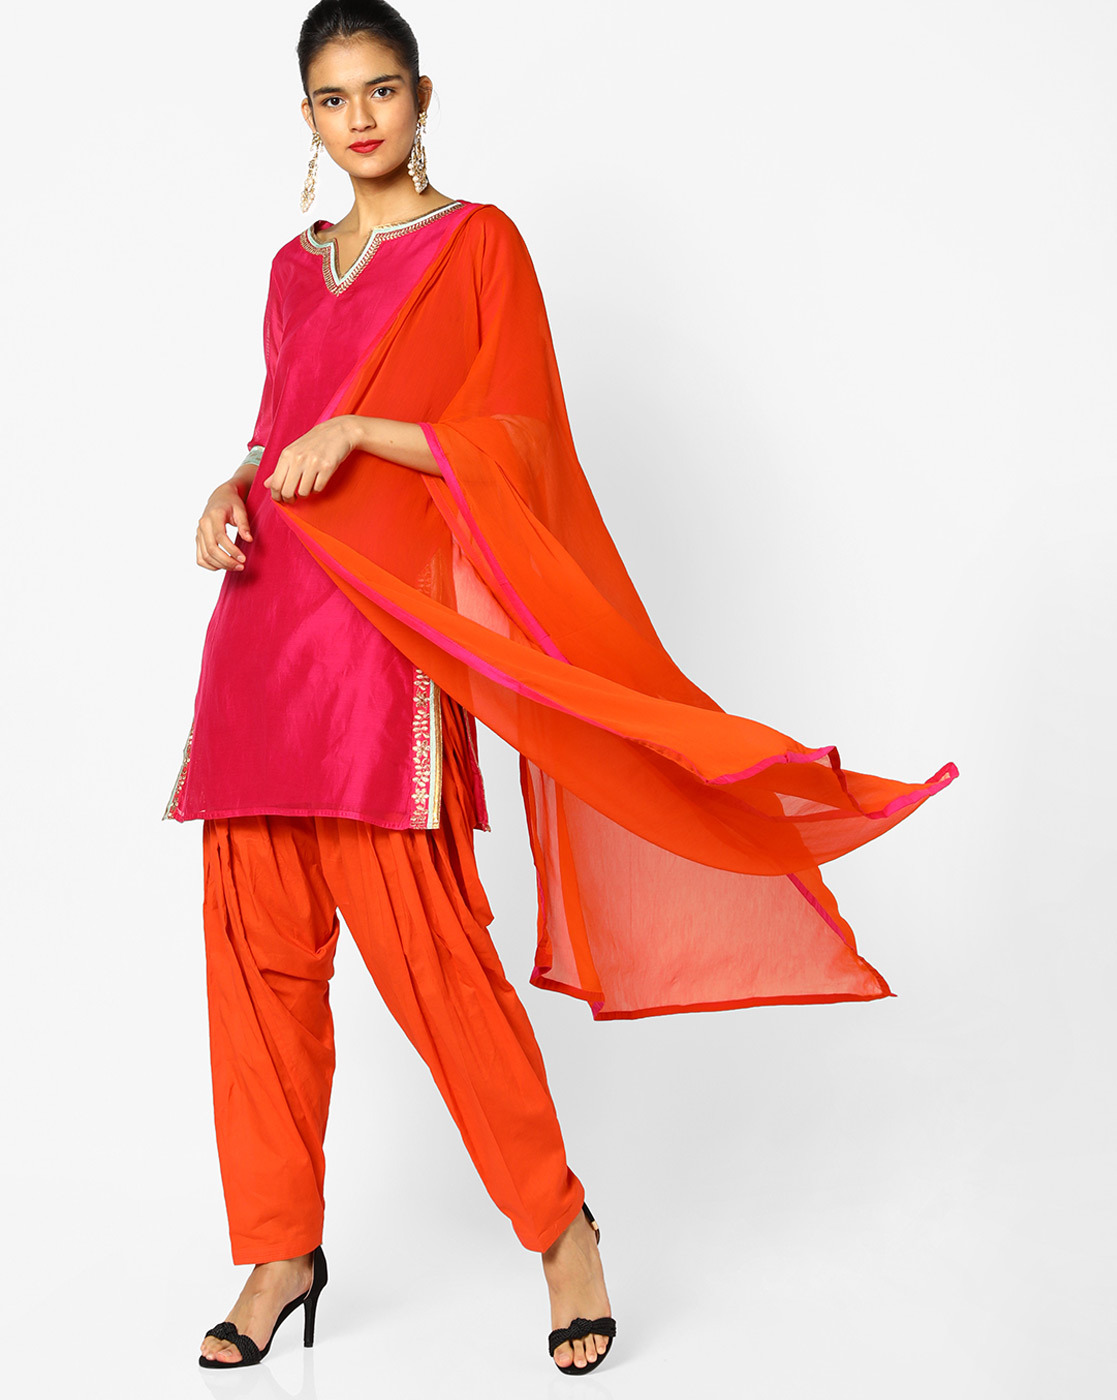 11 Stylish Salwar Pant Designs Ideas For This Year Keep Me Stylish